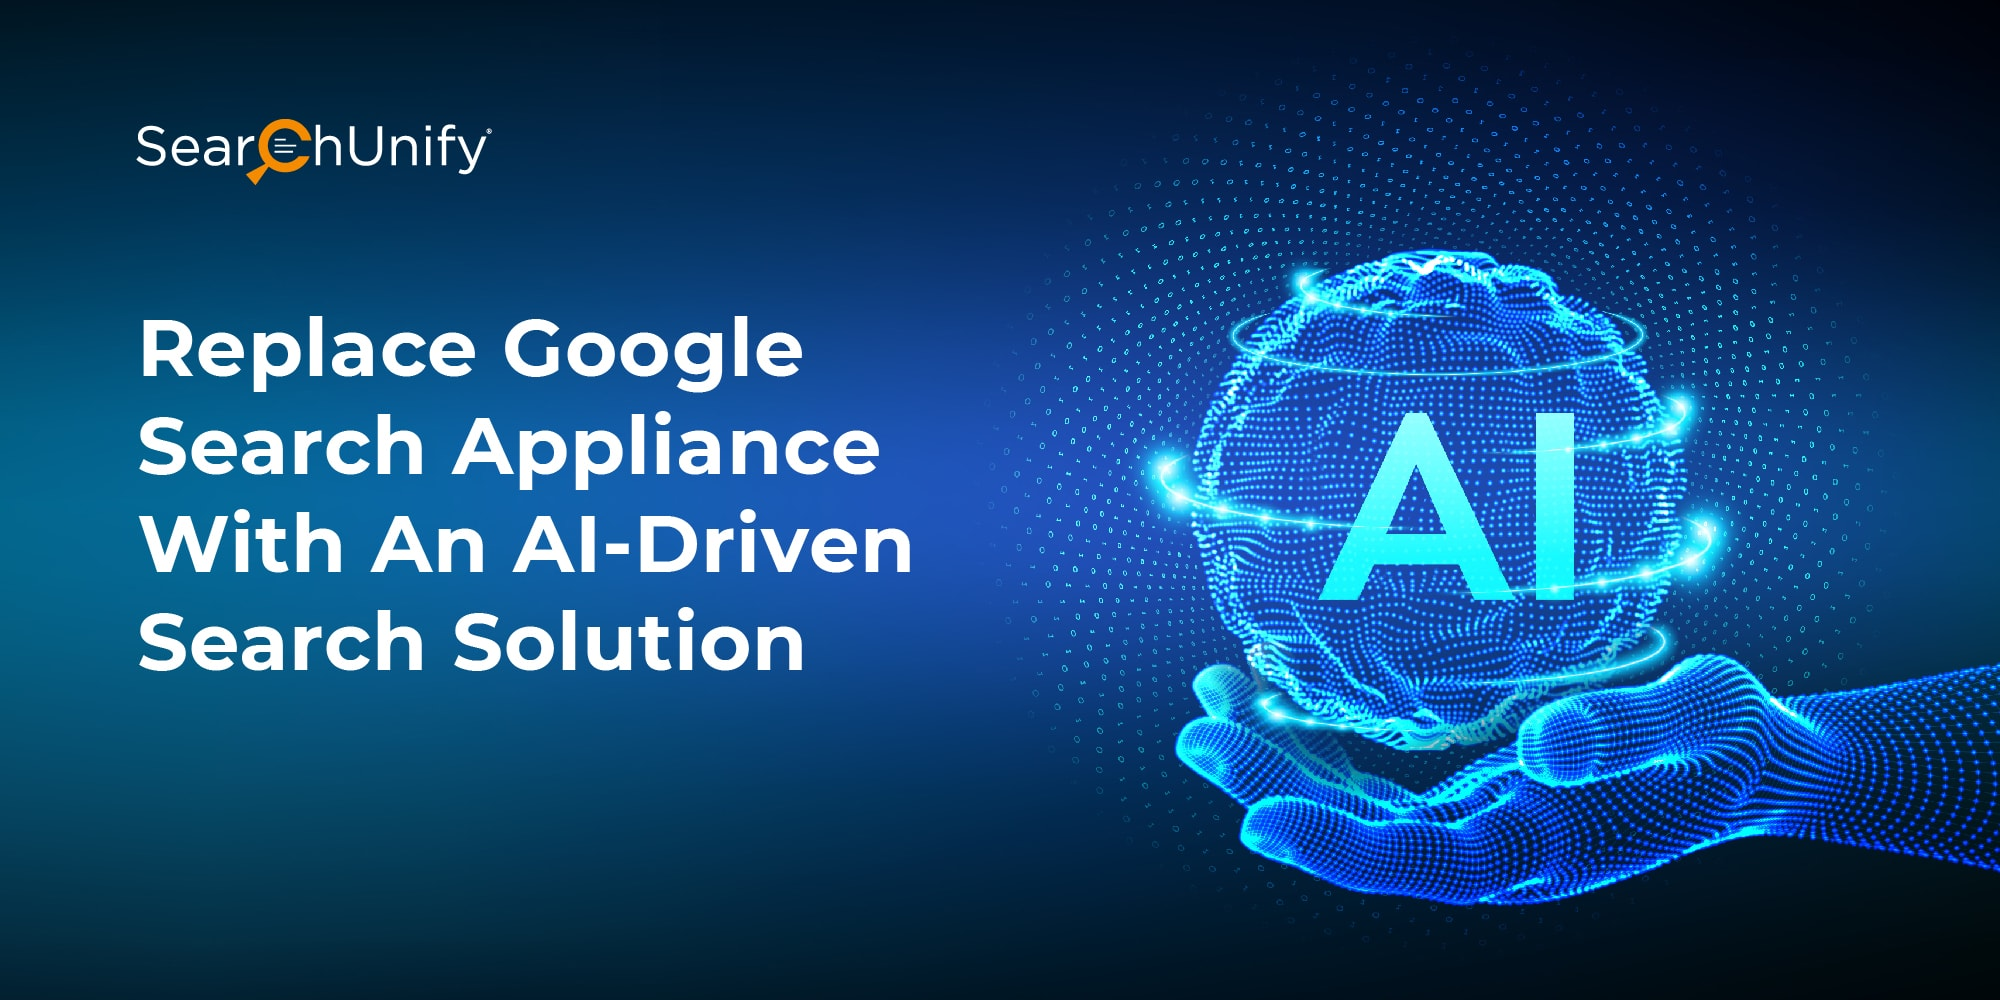 Replace Google Search Appliance With An AI-Driven Search Solution